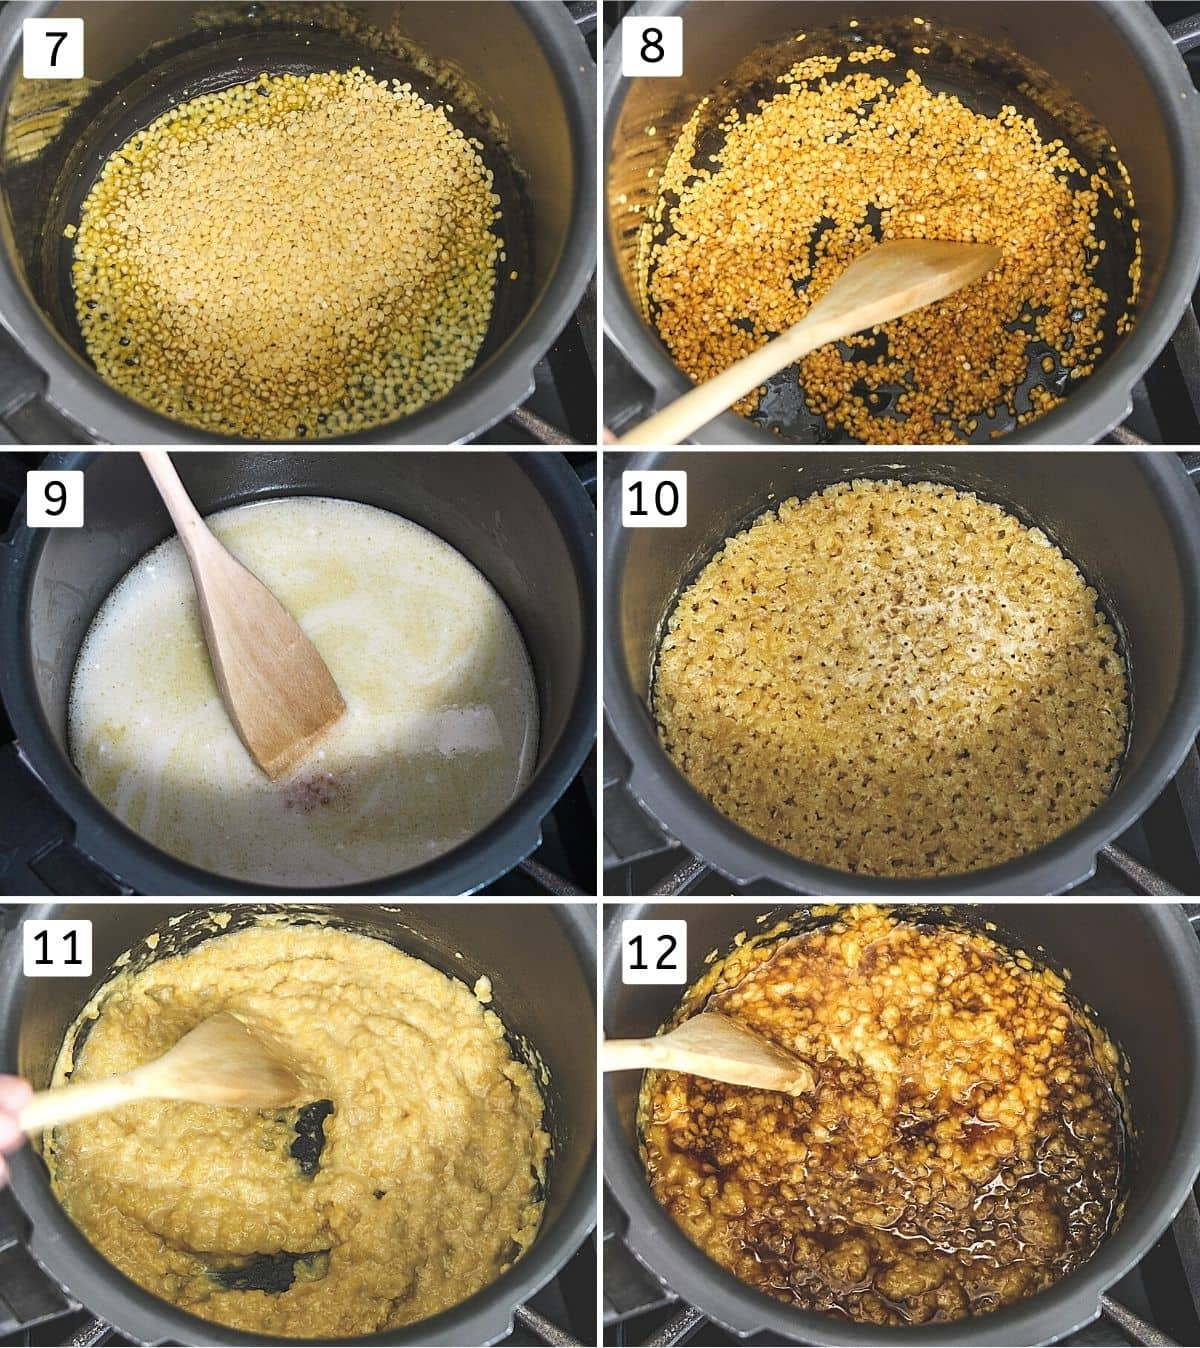 Collage of 6 images showing moong dal in ghee, roasted dal, added coconut milk, cooked dal, mashed dal, added jaggery